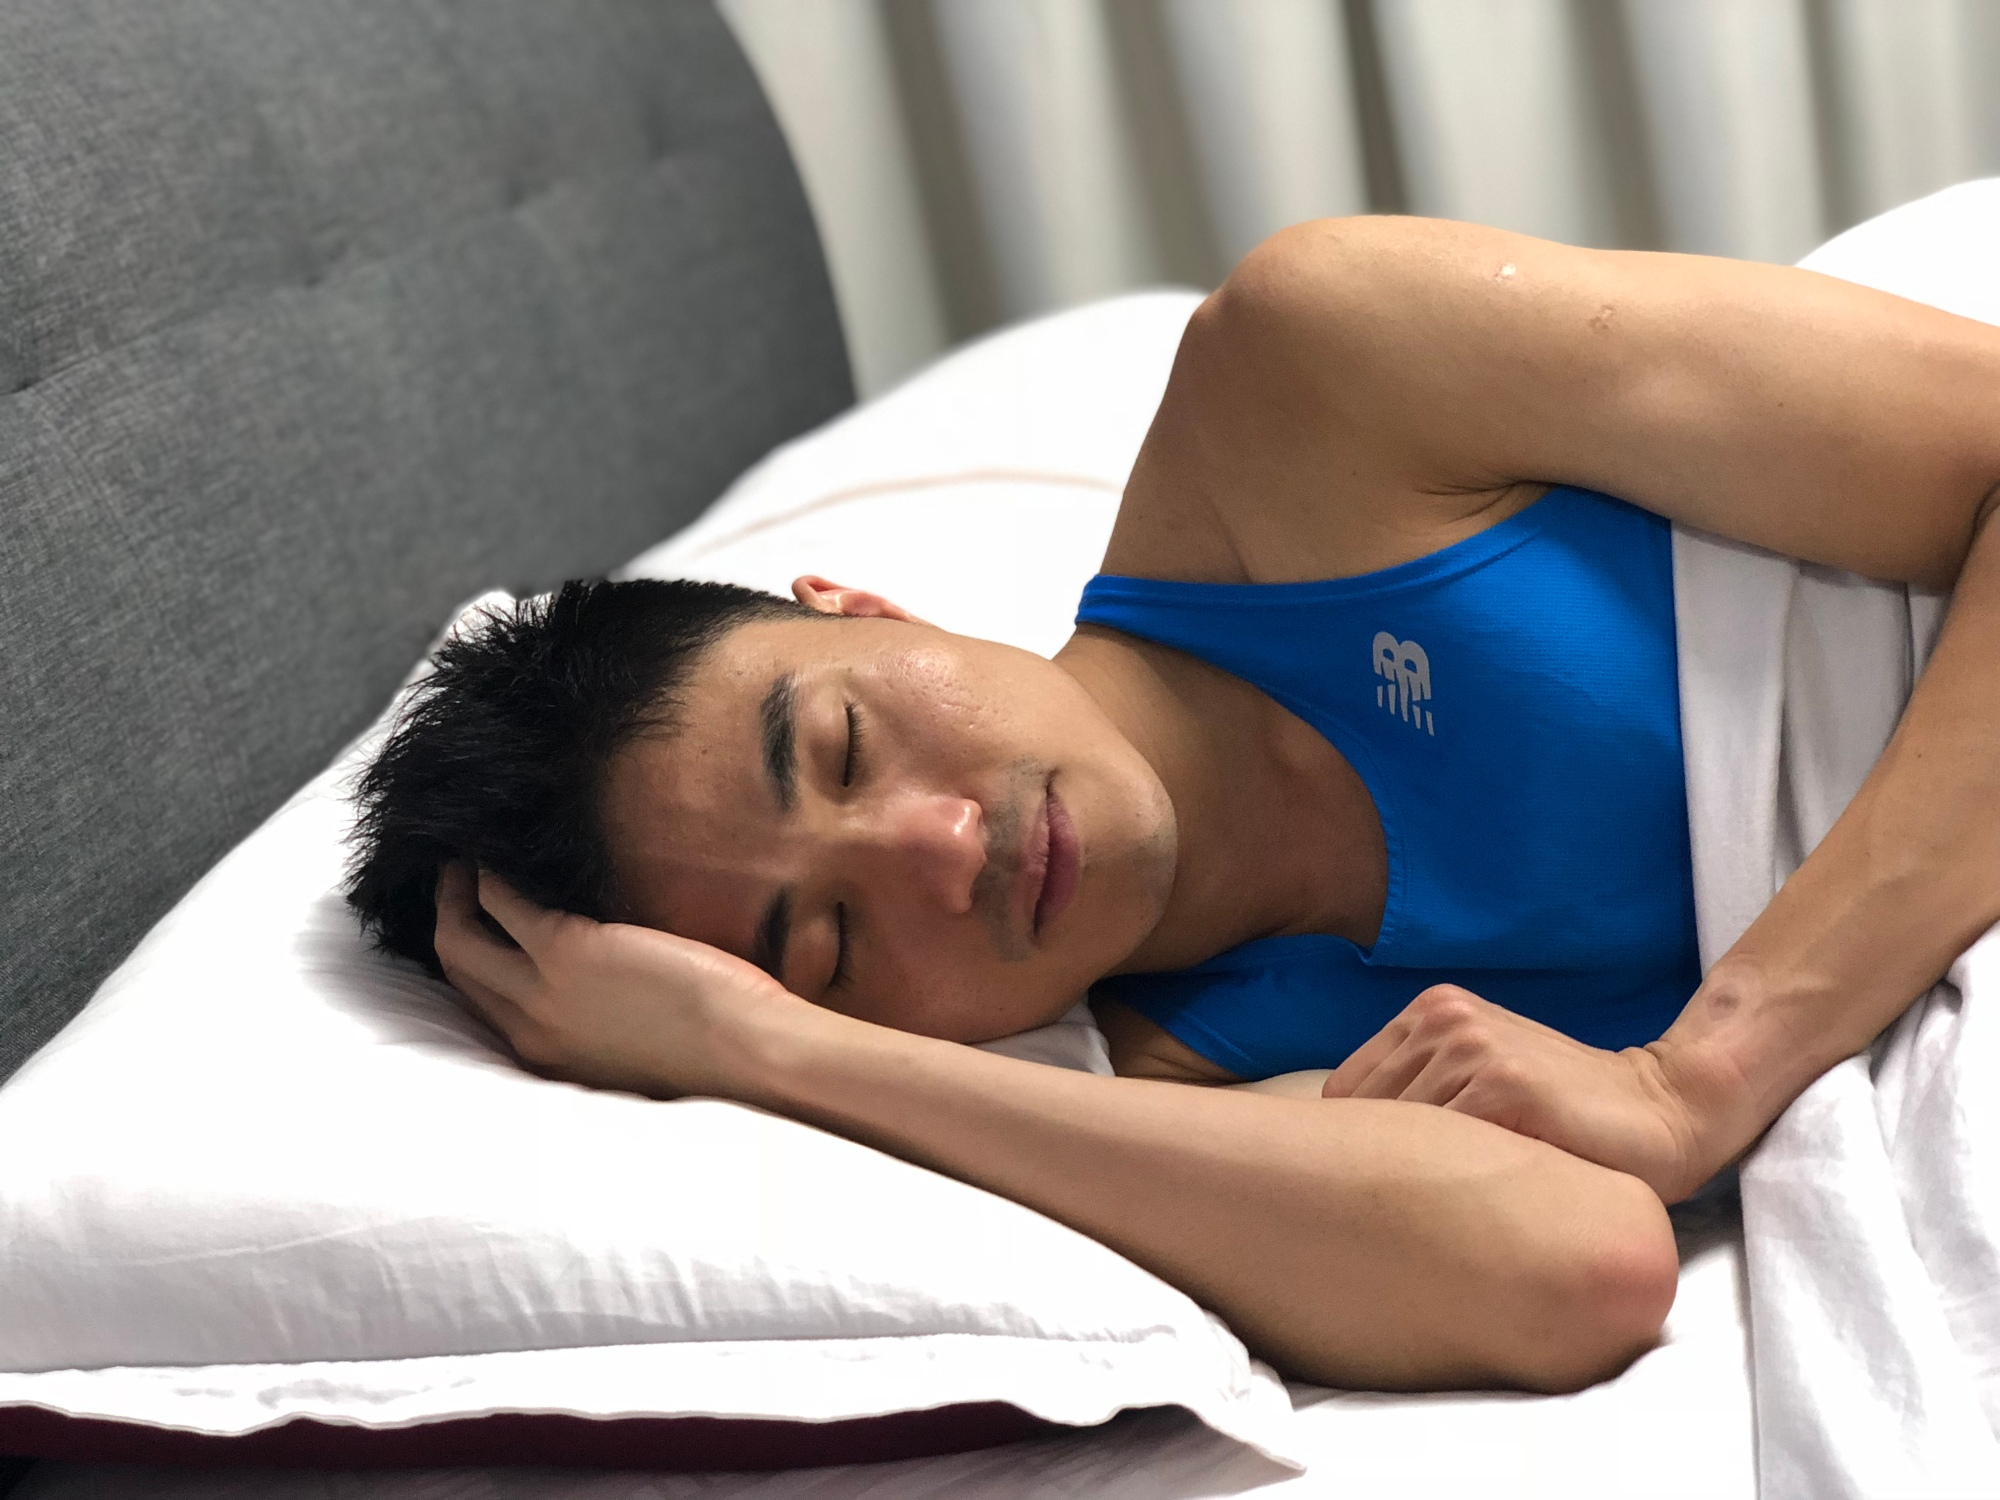 Despite a tight schedule with residency programme and marathon training, Mok Ying Ren tries to sleep at least 6-8 hours a day so that he can recover sufficiently, stay alert and compliment the training. Photo credits: ONEATHLETE